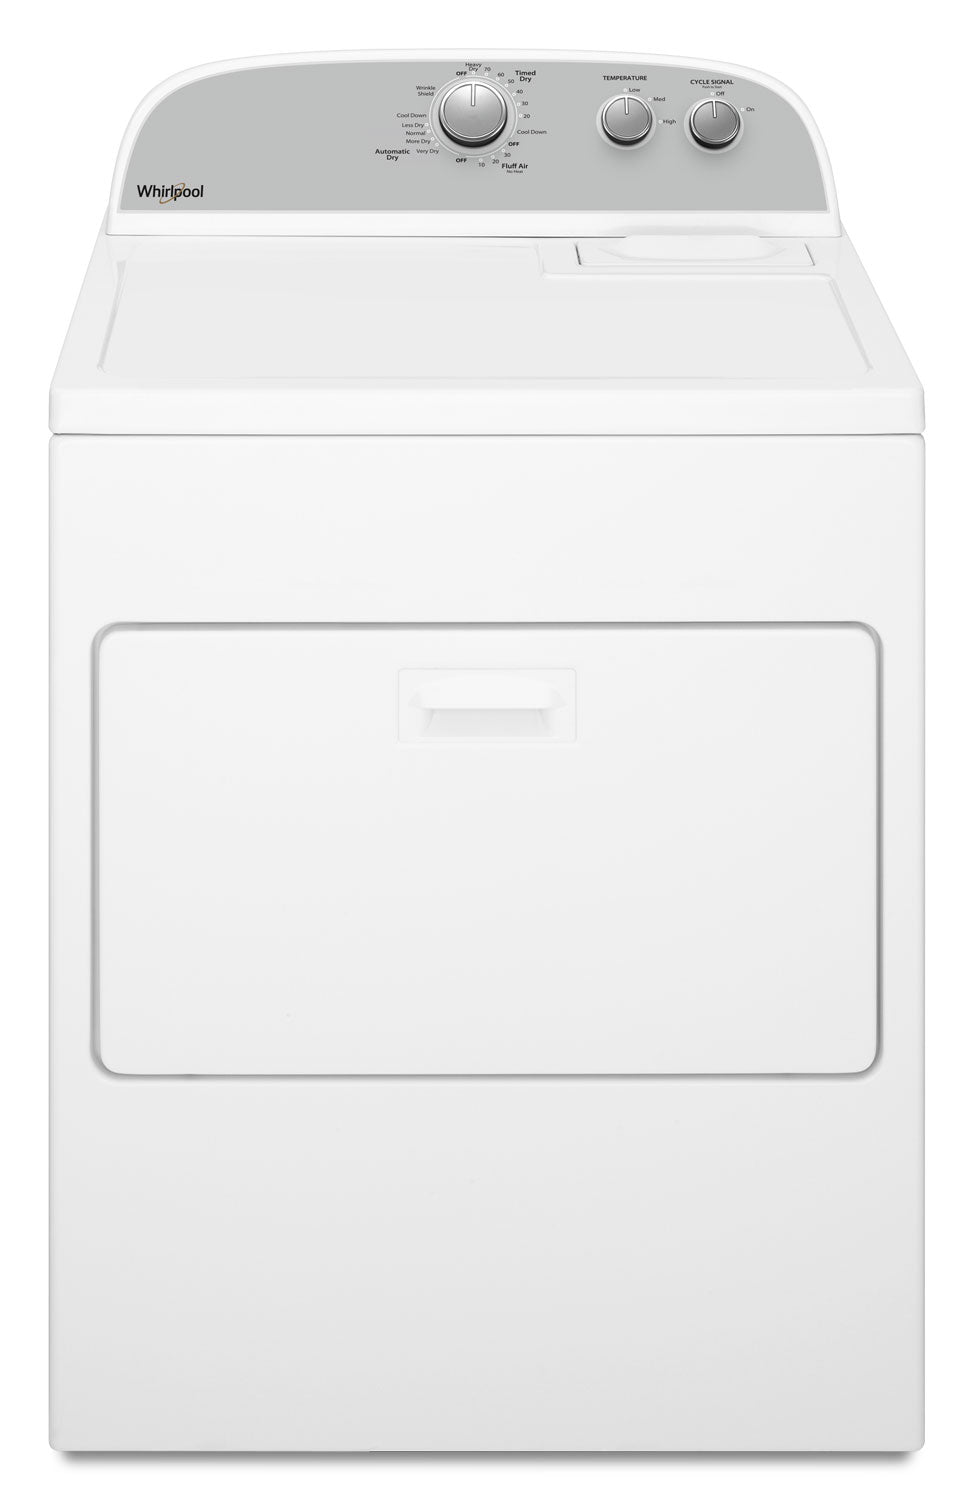 Whirlpool Dryer WED4950HW